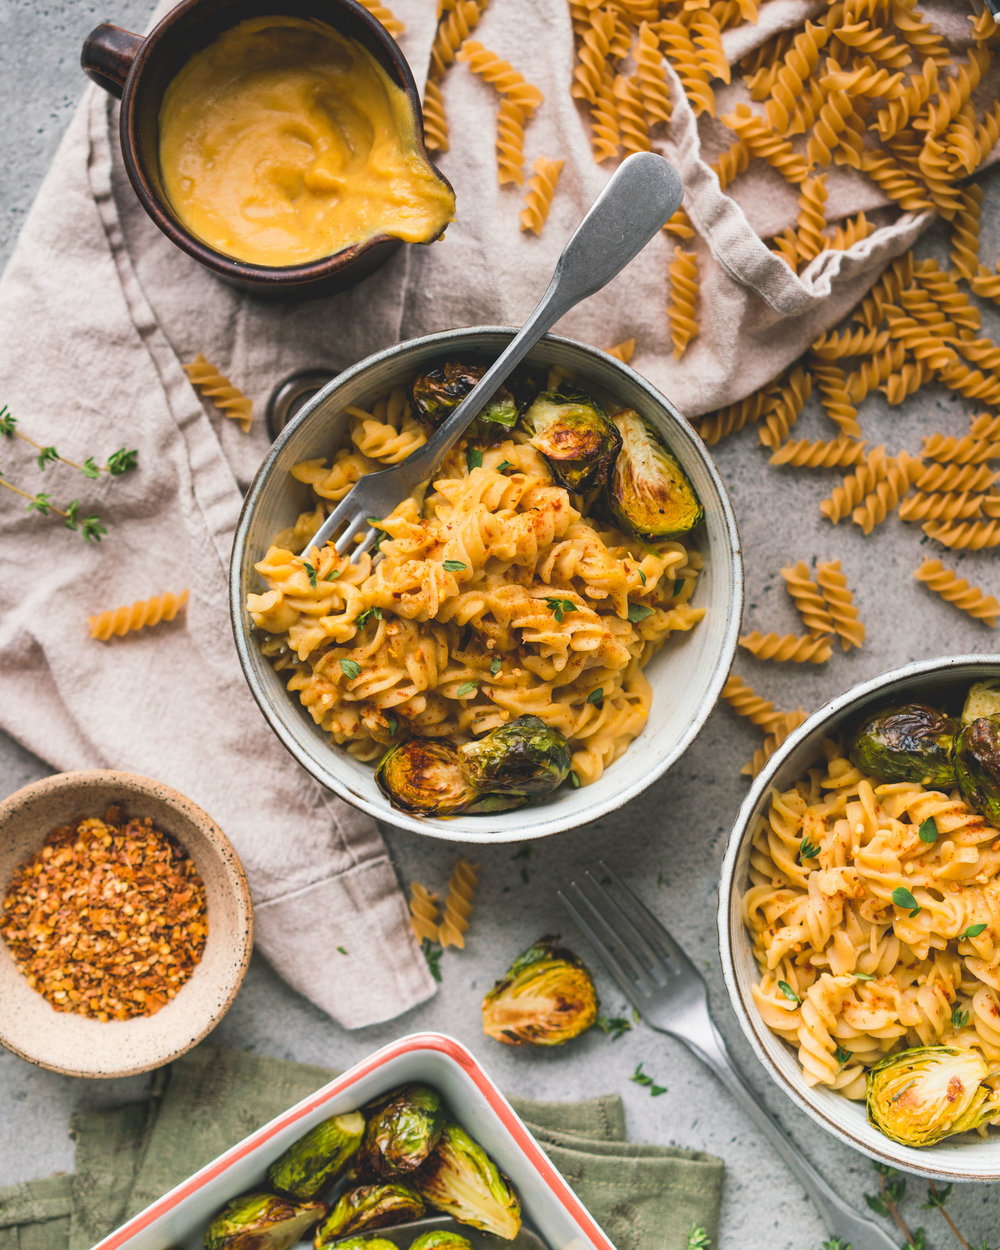 Veggies & Red Lentils Mac'n Cheese - sauce can make up to 4 to 6 servings